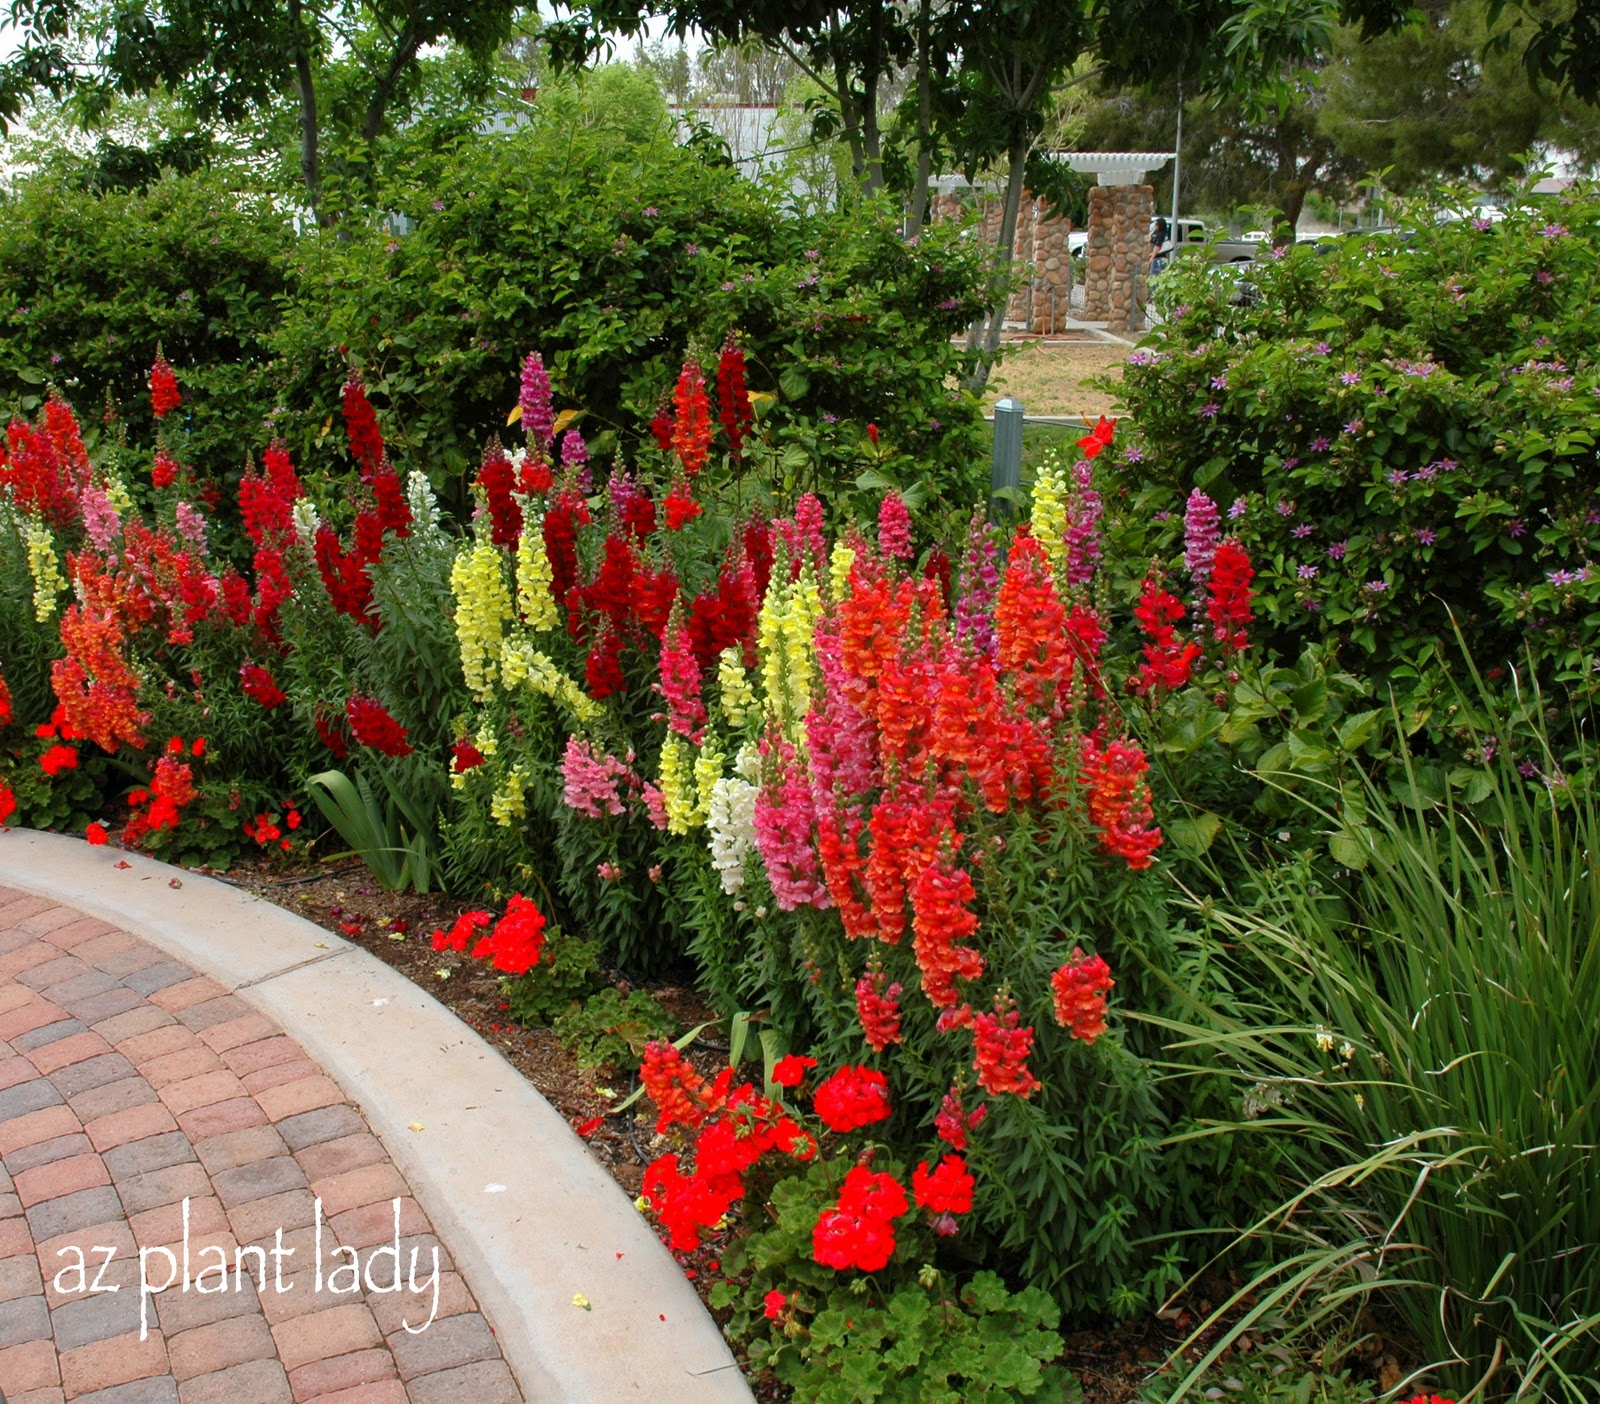 Curing the Garden Blahs with Color - Ramblings from a Desert Garden